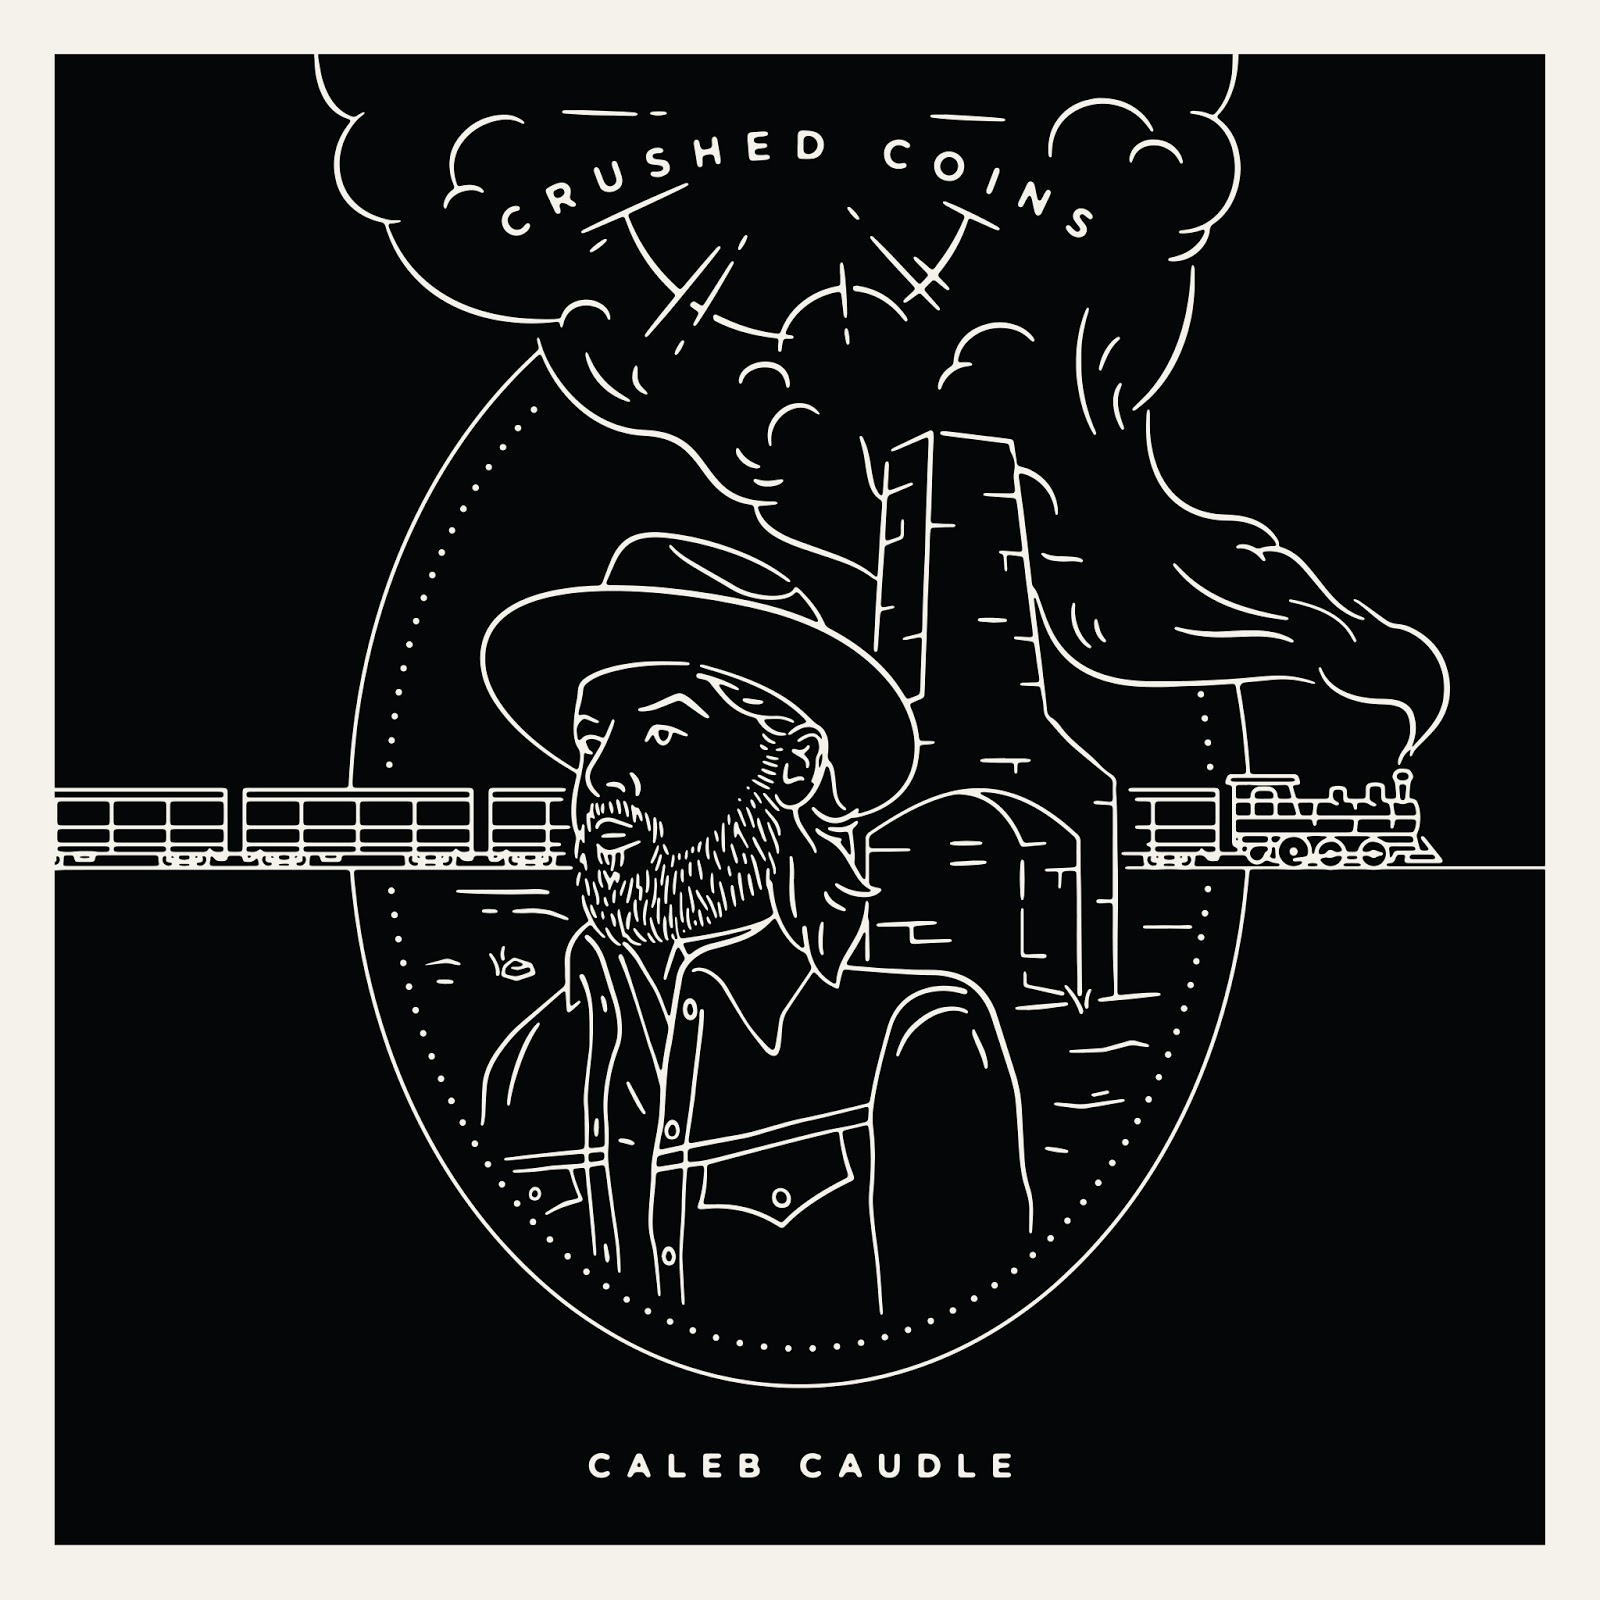 Three chords and the truth uk album review caleb caudle crushed album review caleb caudle crushed coins cornelius chapel records malvernweather Gallery